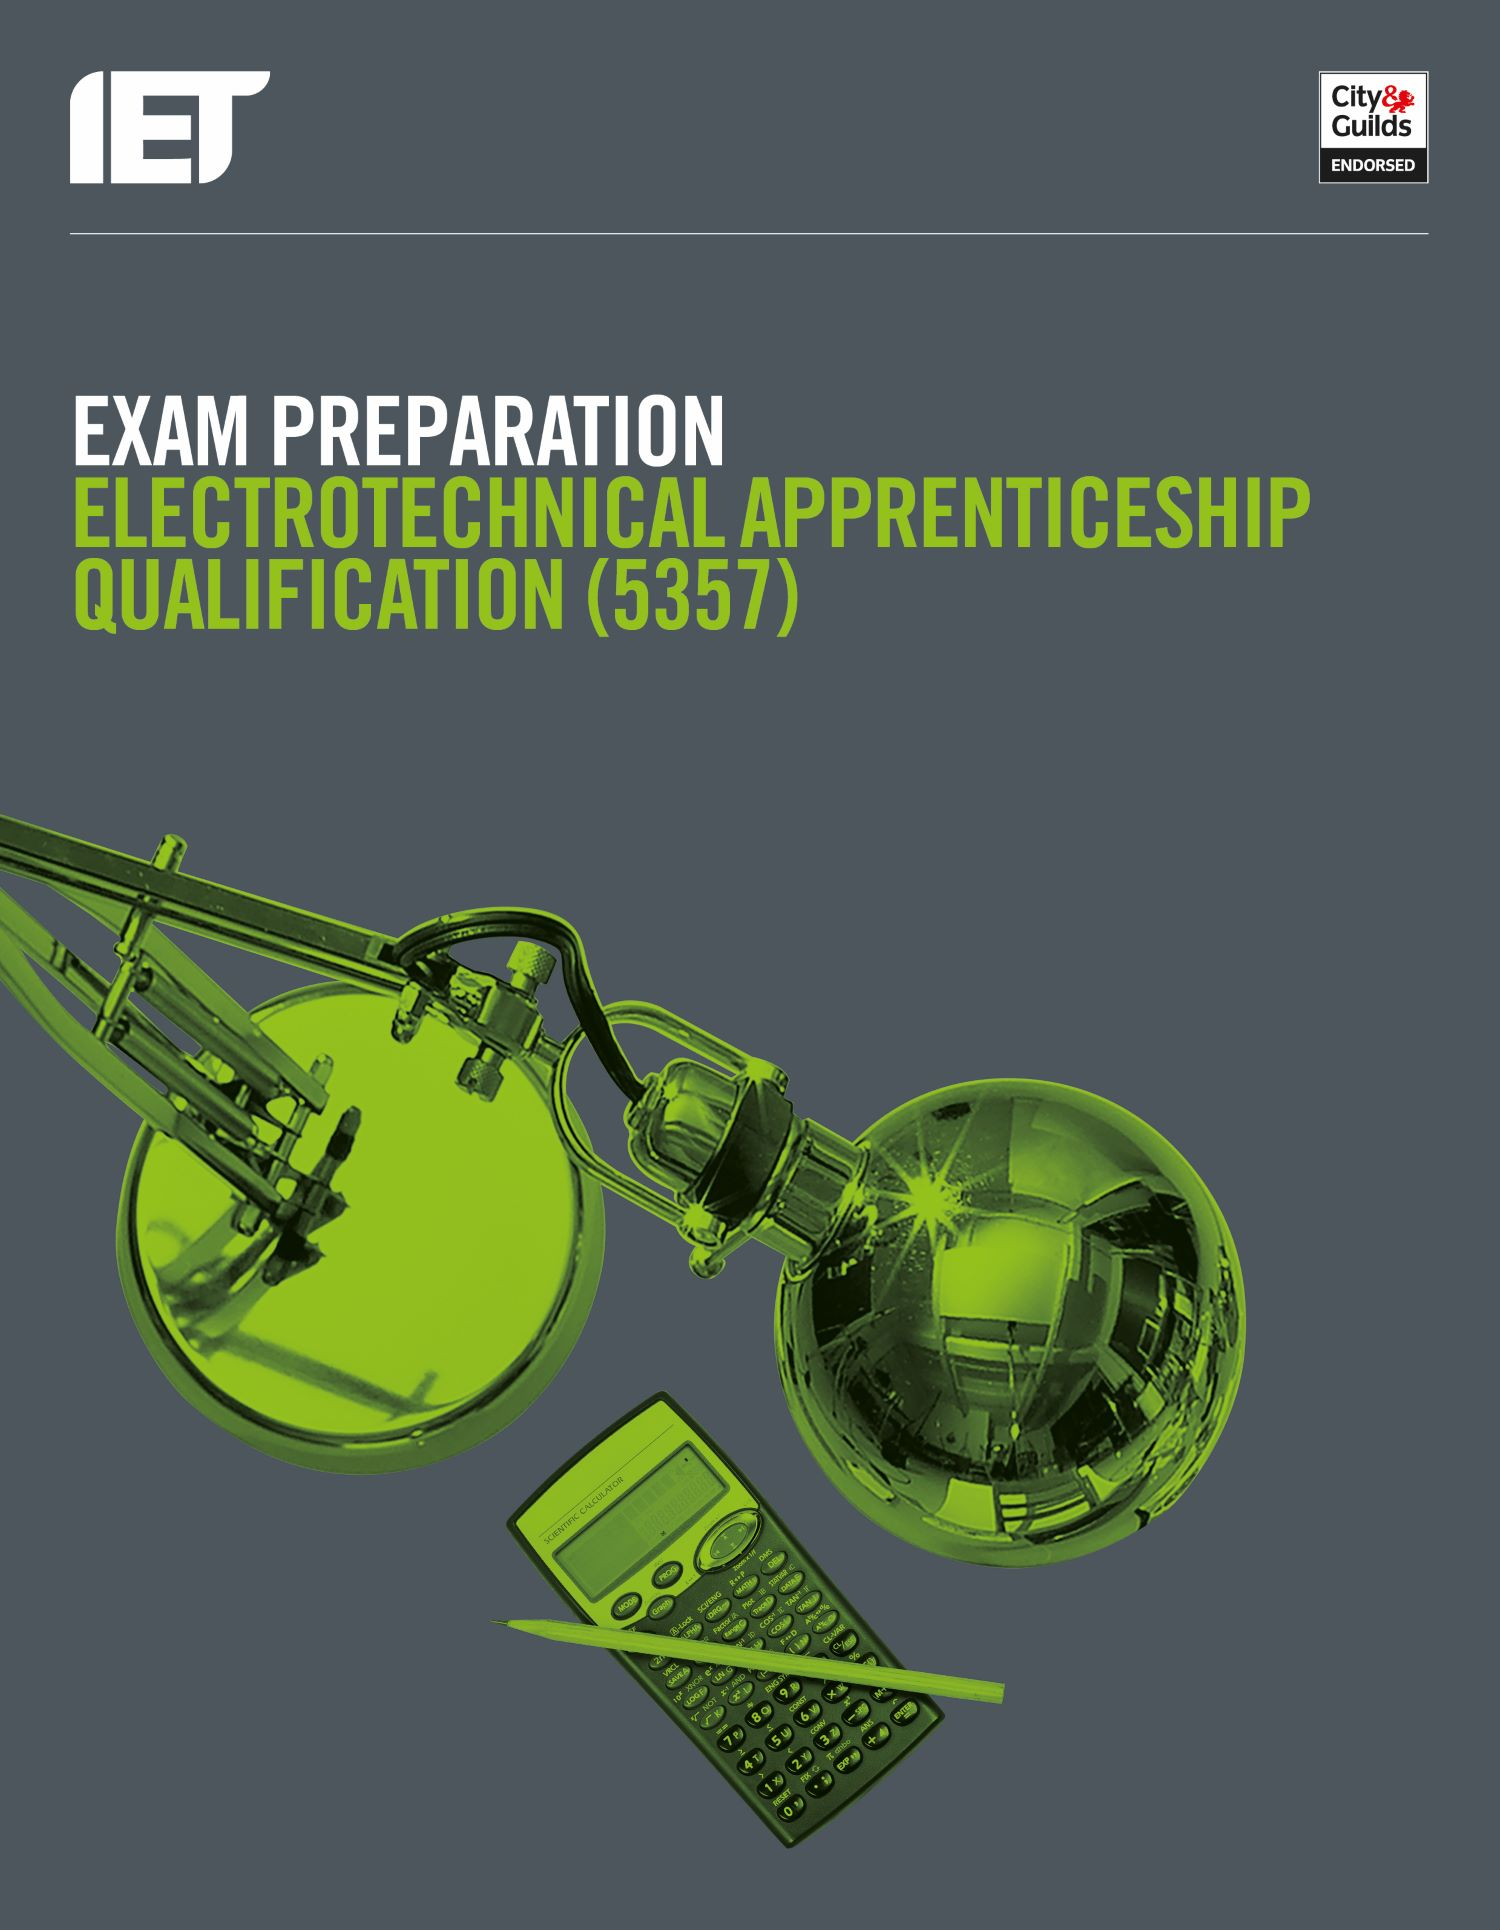 Exam Preparation: Electrotechnical Apprenticeship Qualification (5357)